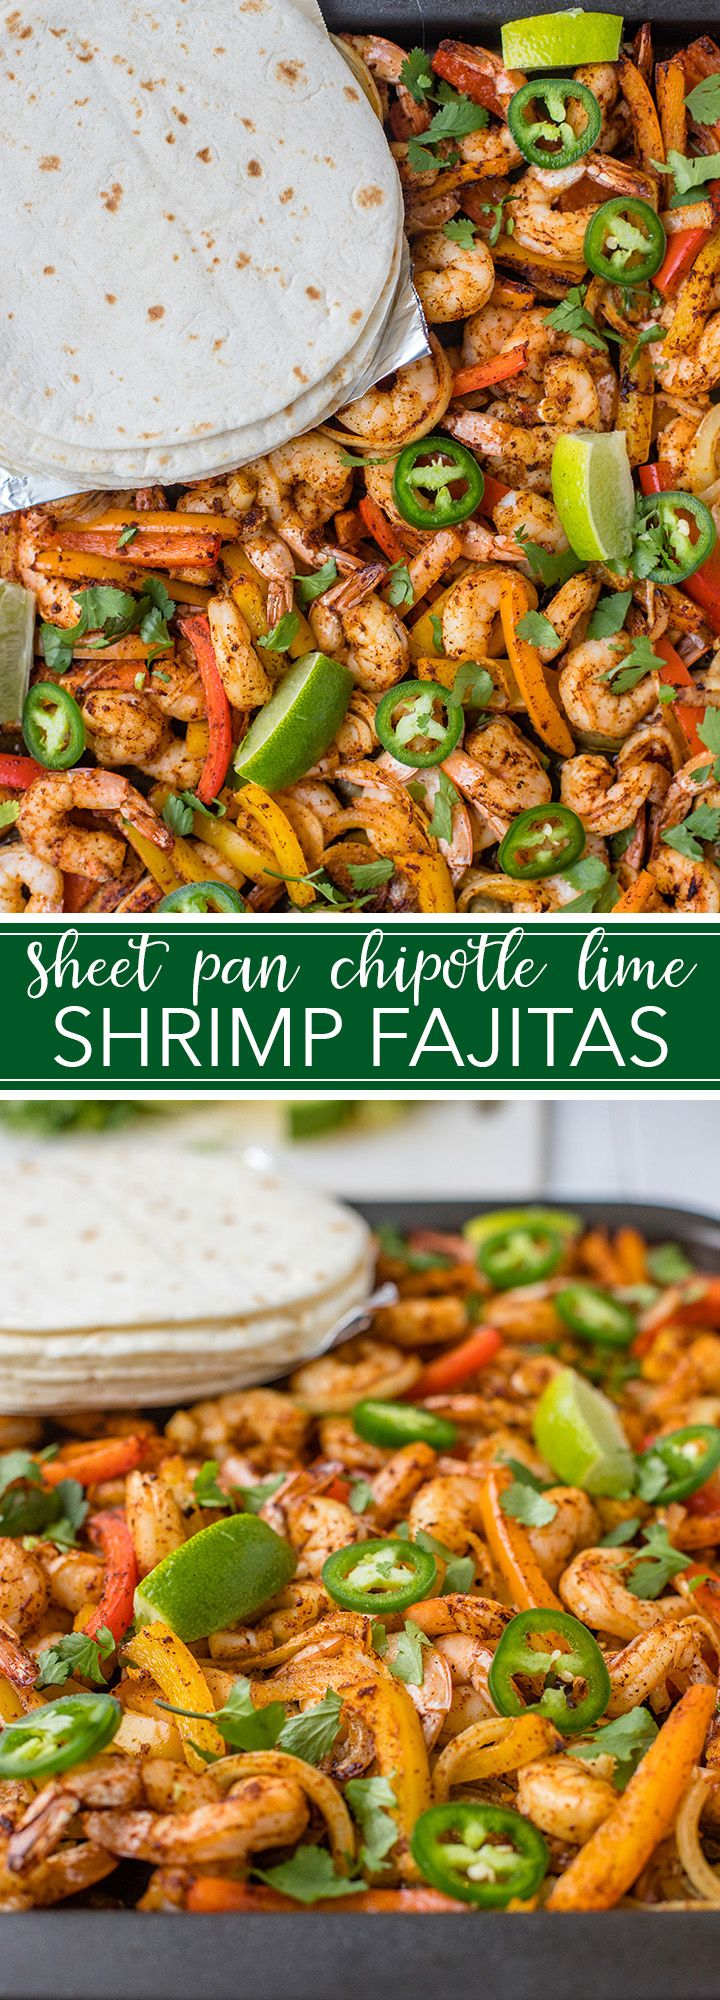 All the fixings for these chipotle lime shrimp fajitas are seasoned together, then baked on one sheet pan, for a seriously simple and delicious weeknight dinner ready in 20 minutes! #fajitas #shrimp #sheetpan